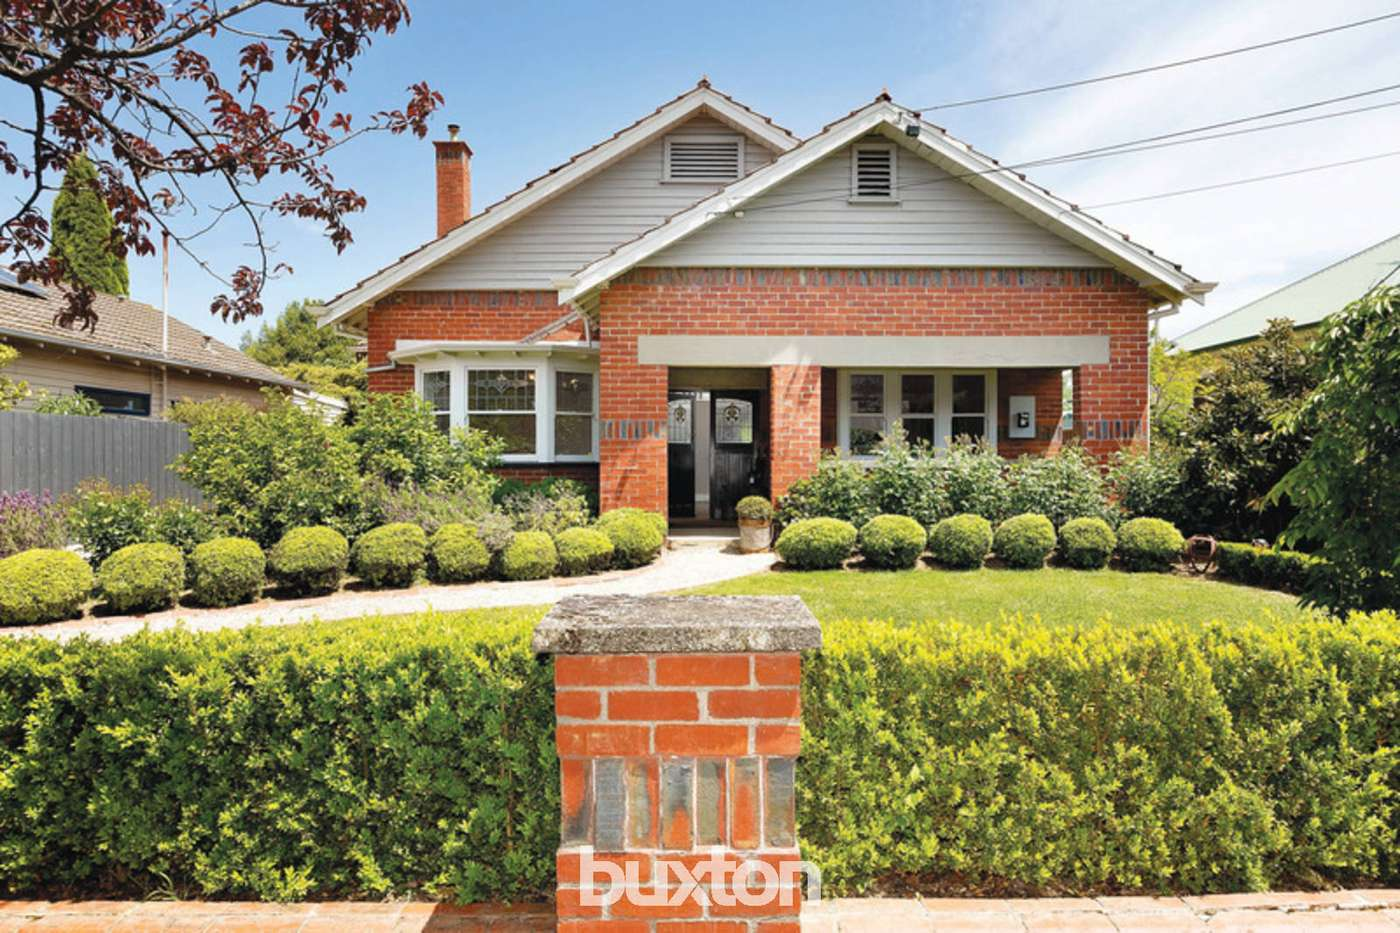 Main view of Homely house listing, 307 Crompton Street, Soldiers Hill, VIC 3350